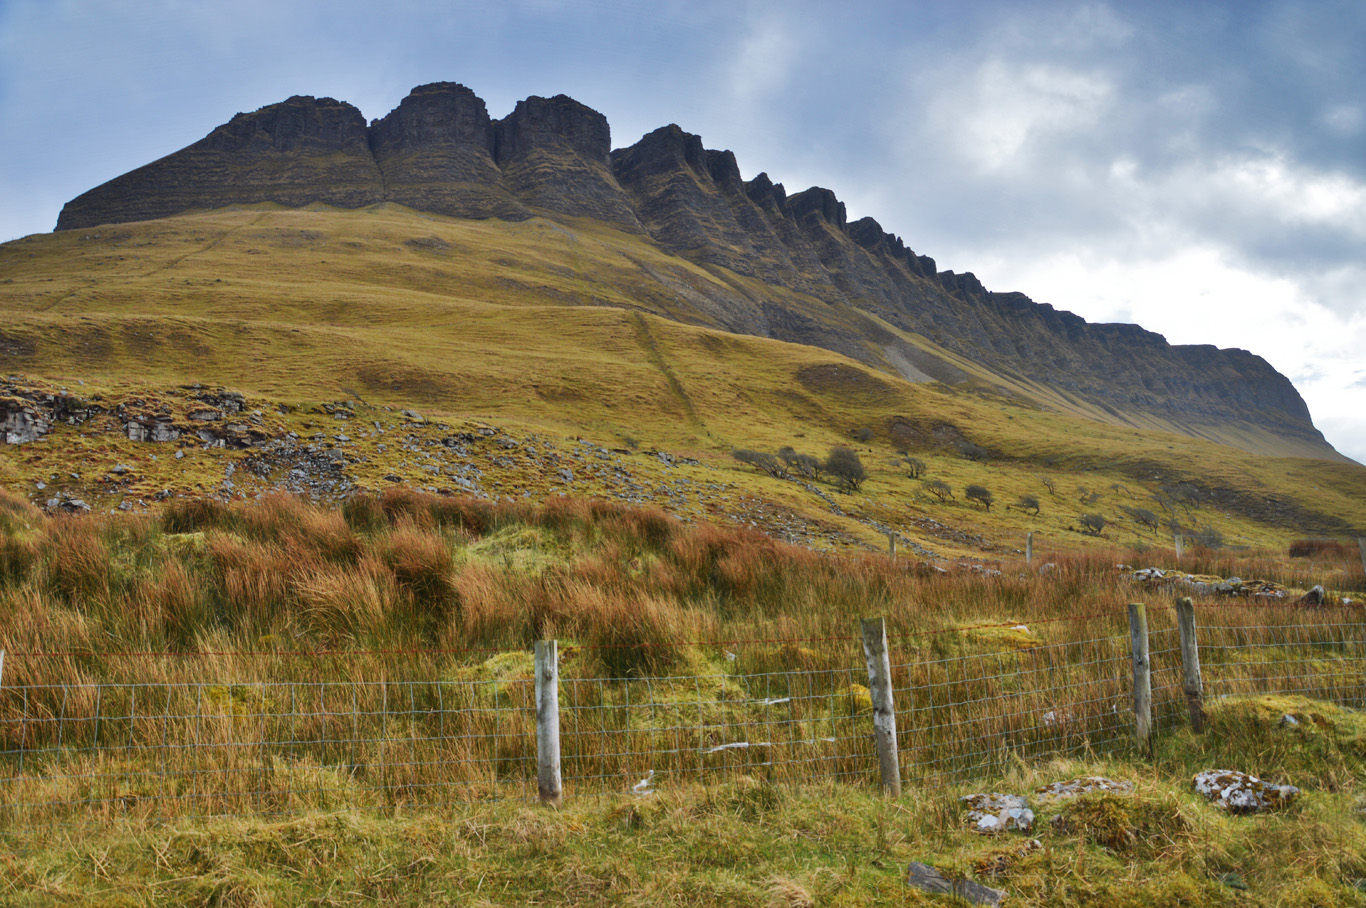 The northern side of Benbulben